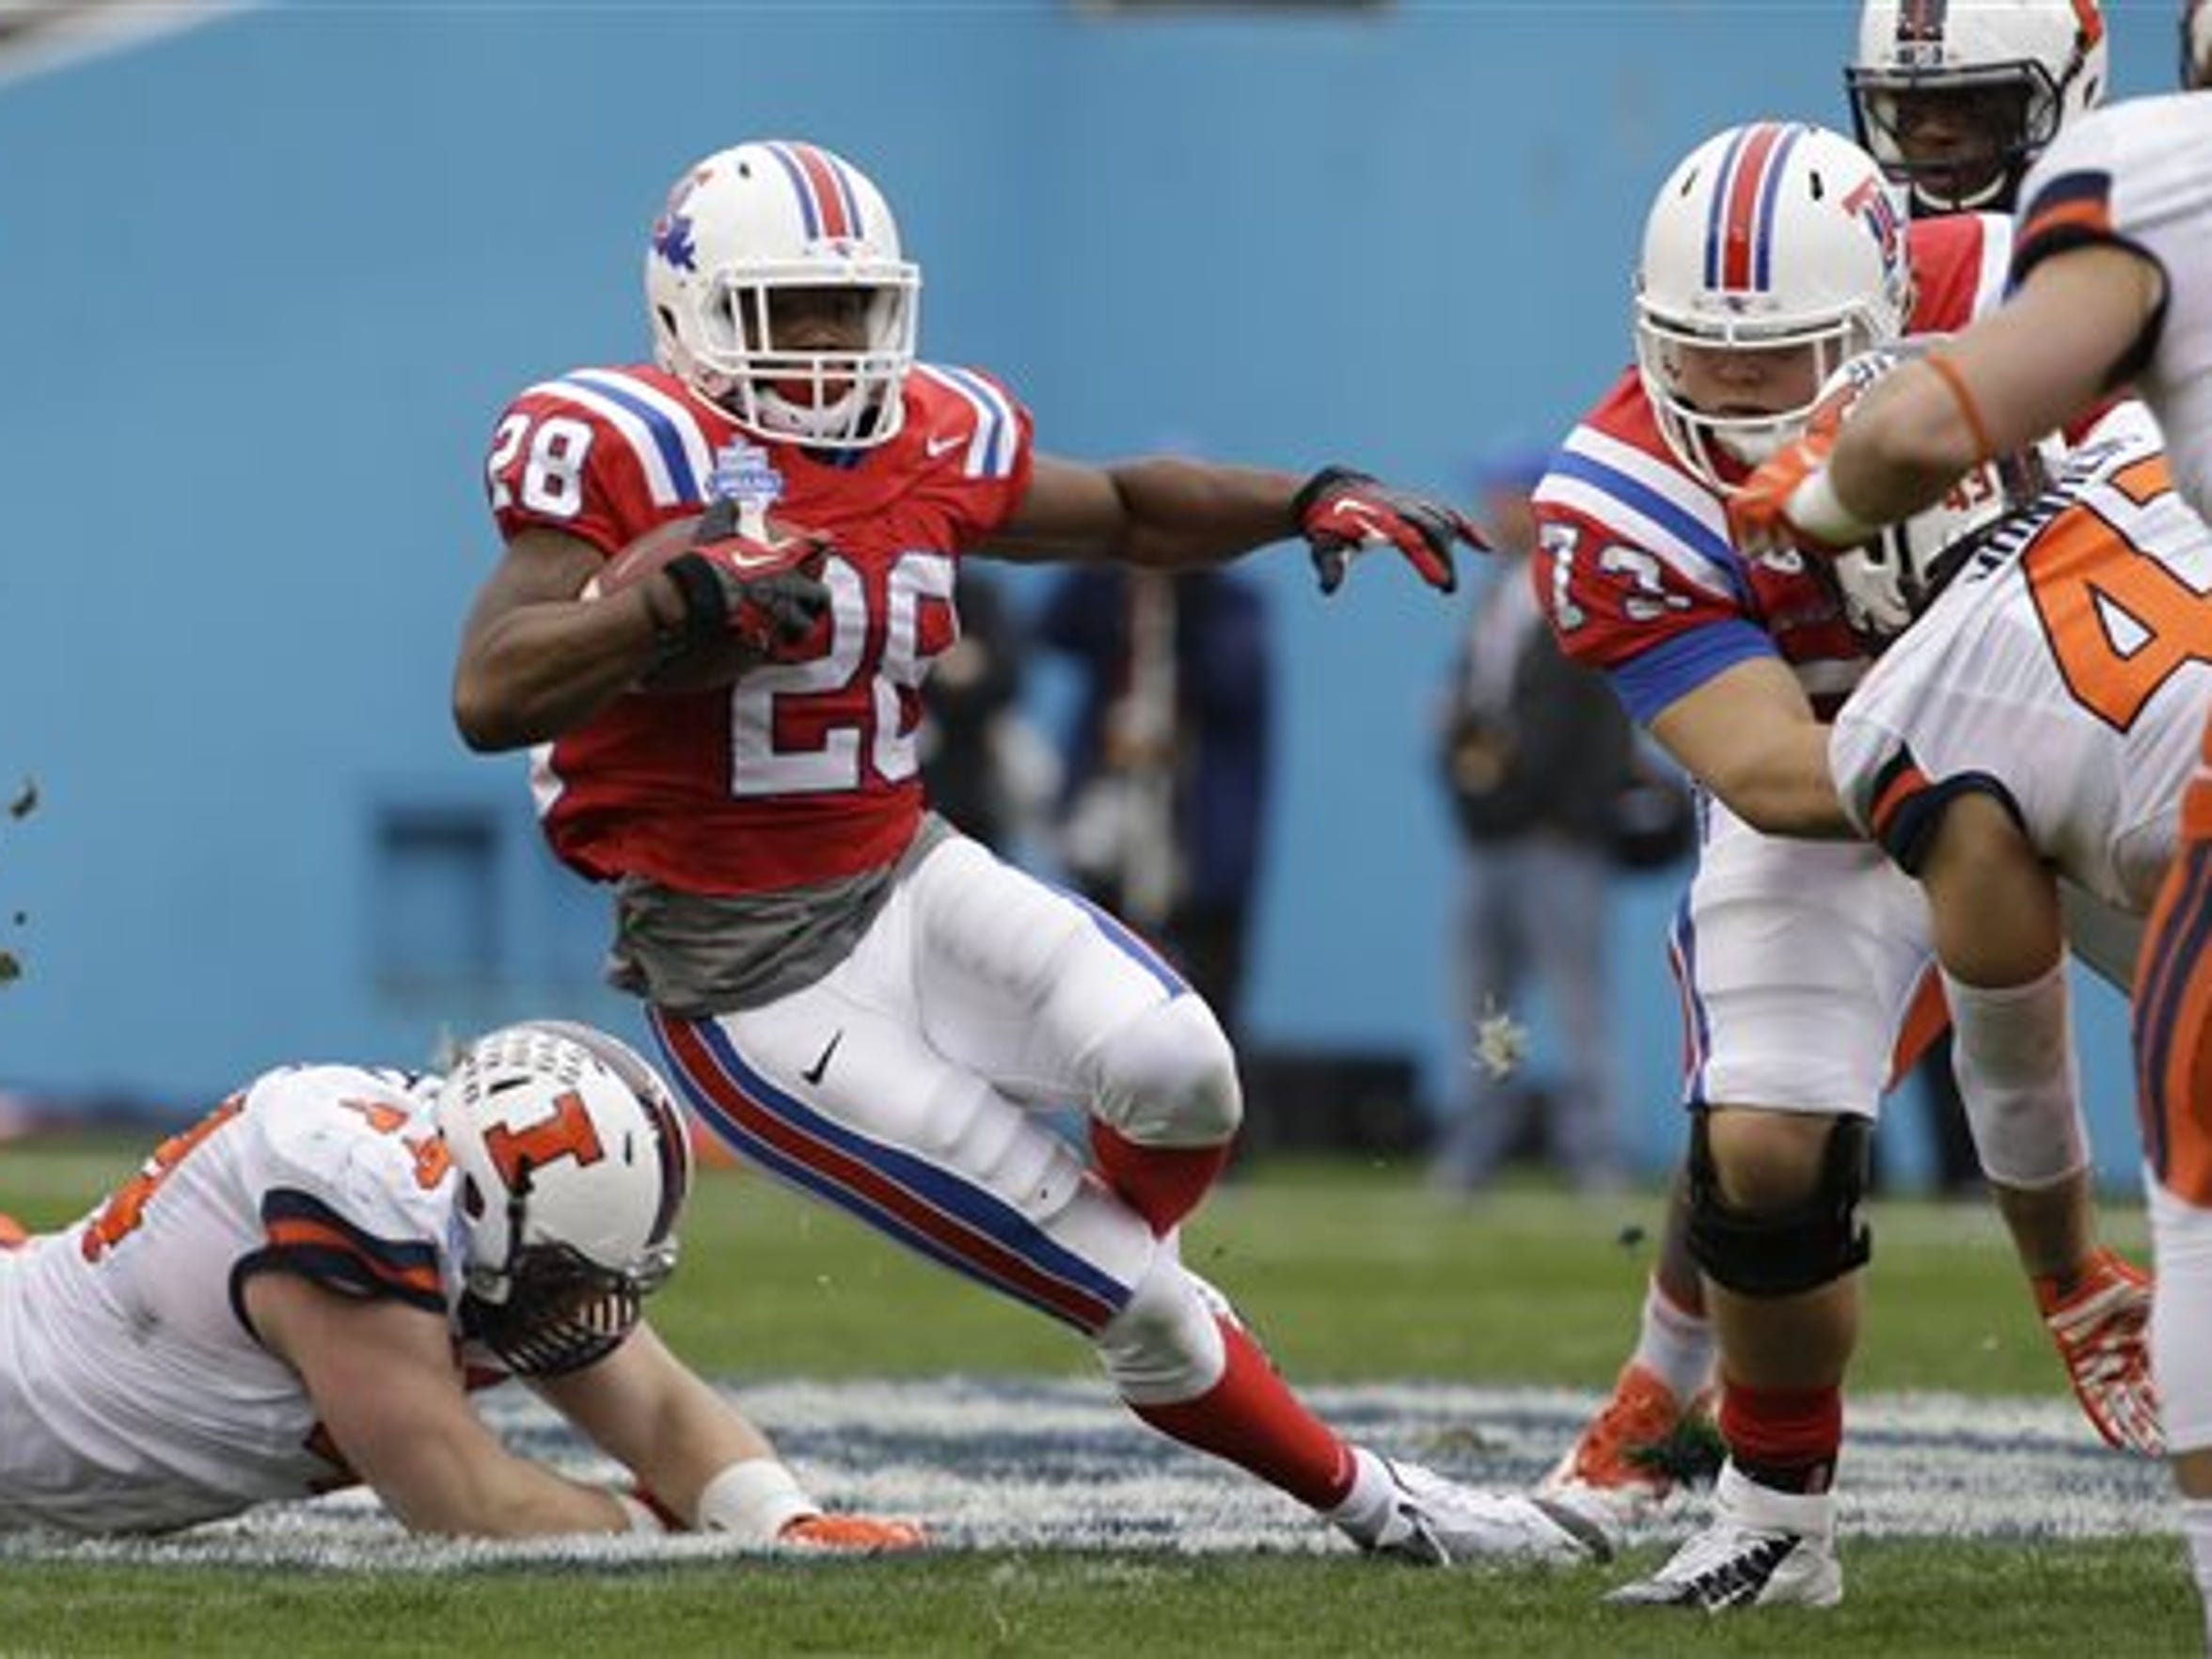 Louisiana Tech running back Kenneth Dixon (28) beats